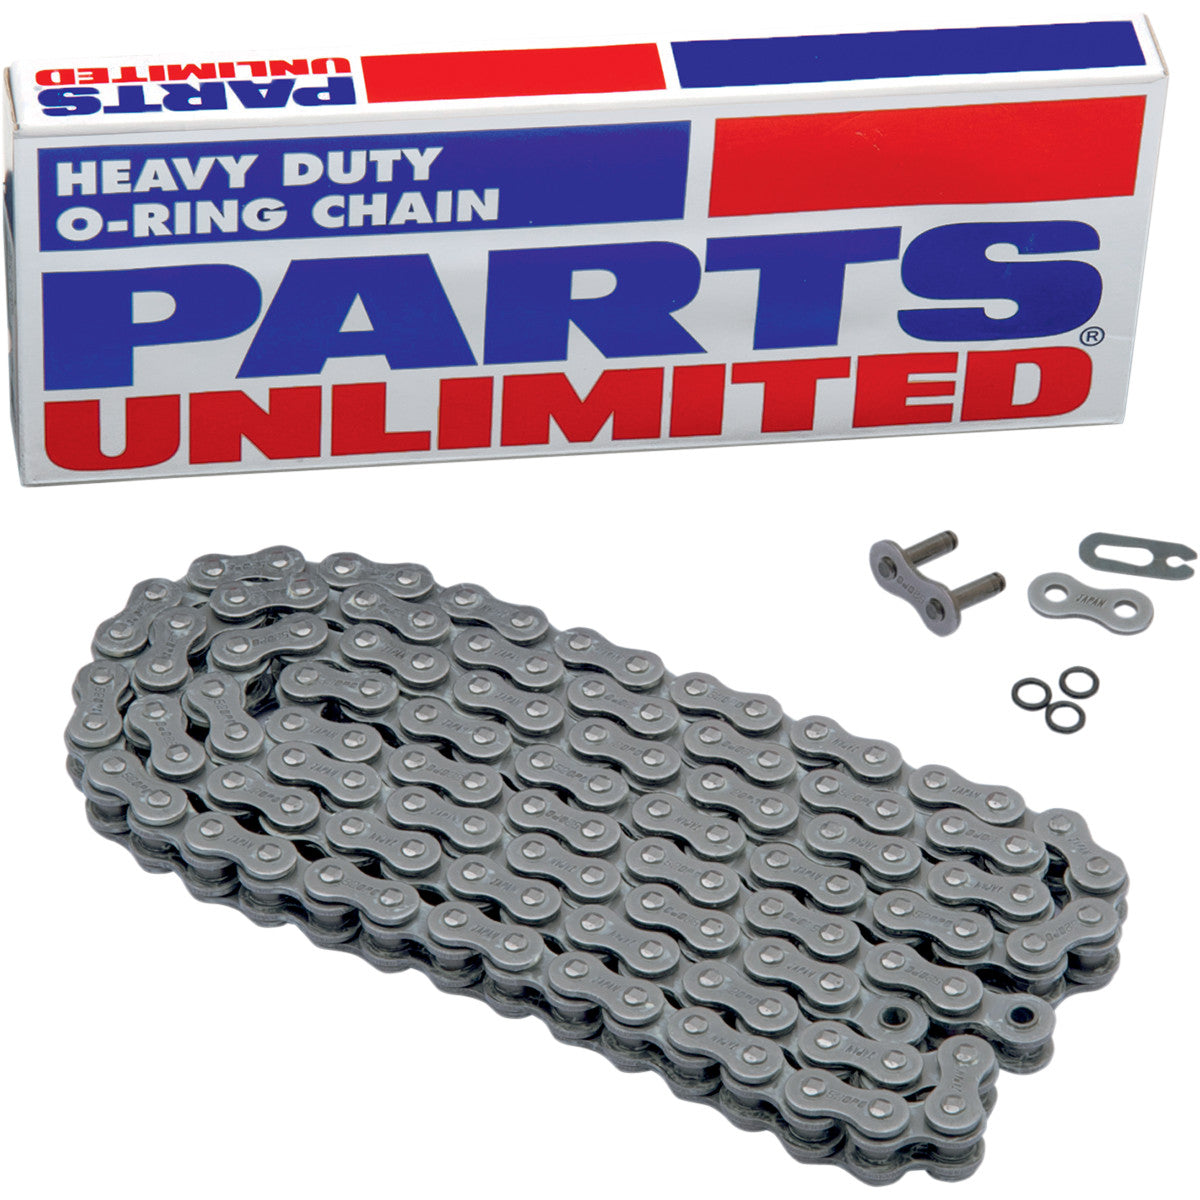 PARTS UNLIMITED-CHAIN CHAIN PU 530 O-RNG X 120L